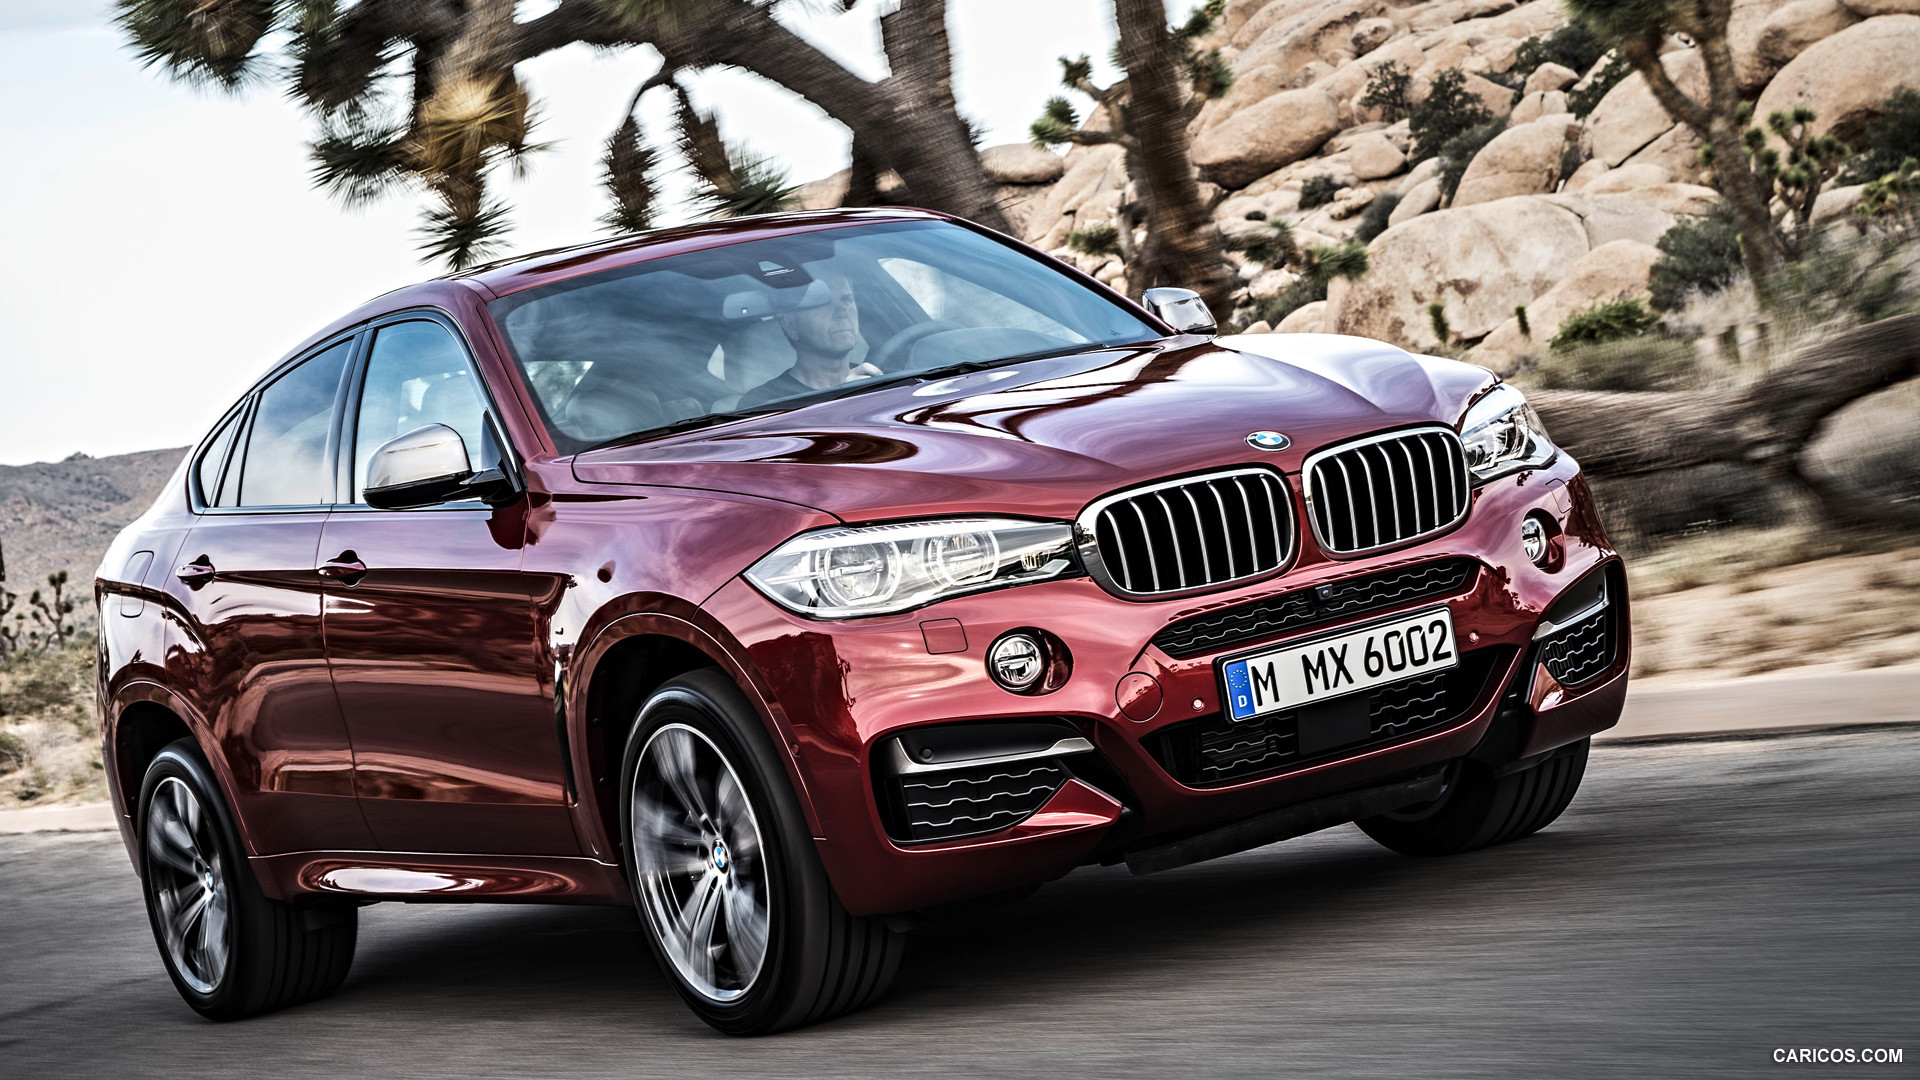 bmw x6 m50d photos photogallery with 30 pics. Black Bedroom Furniture Sets. Home Design Ideas